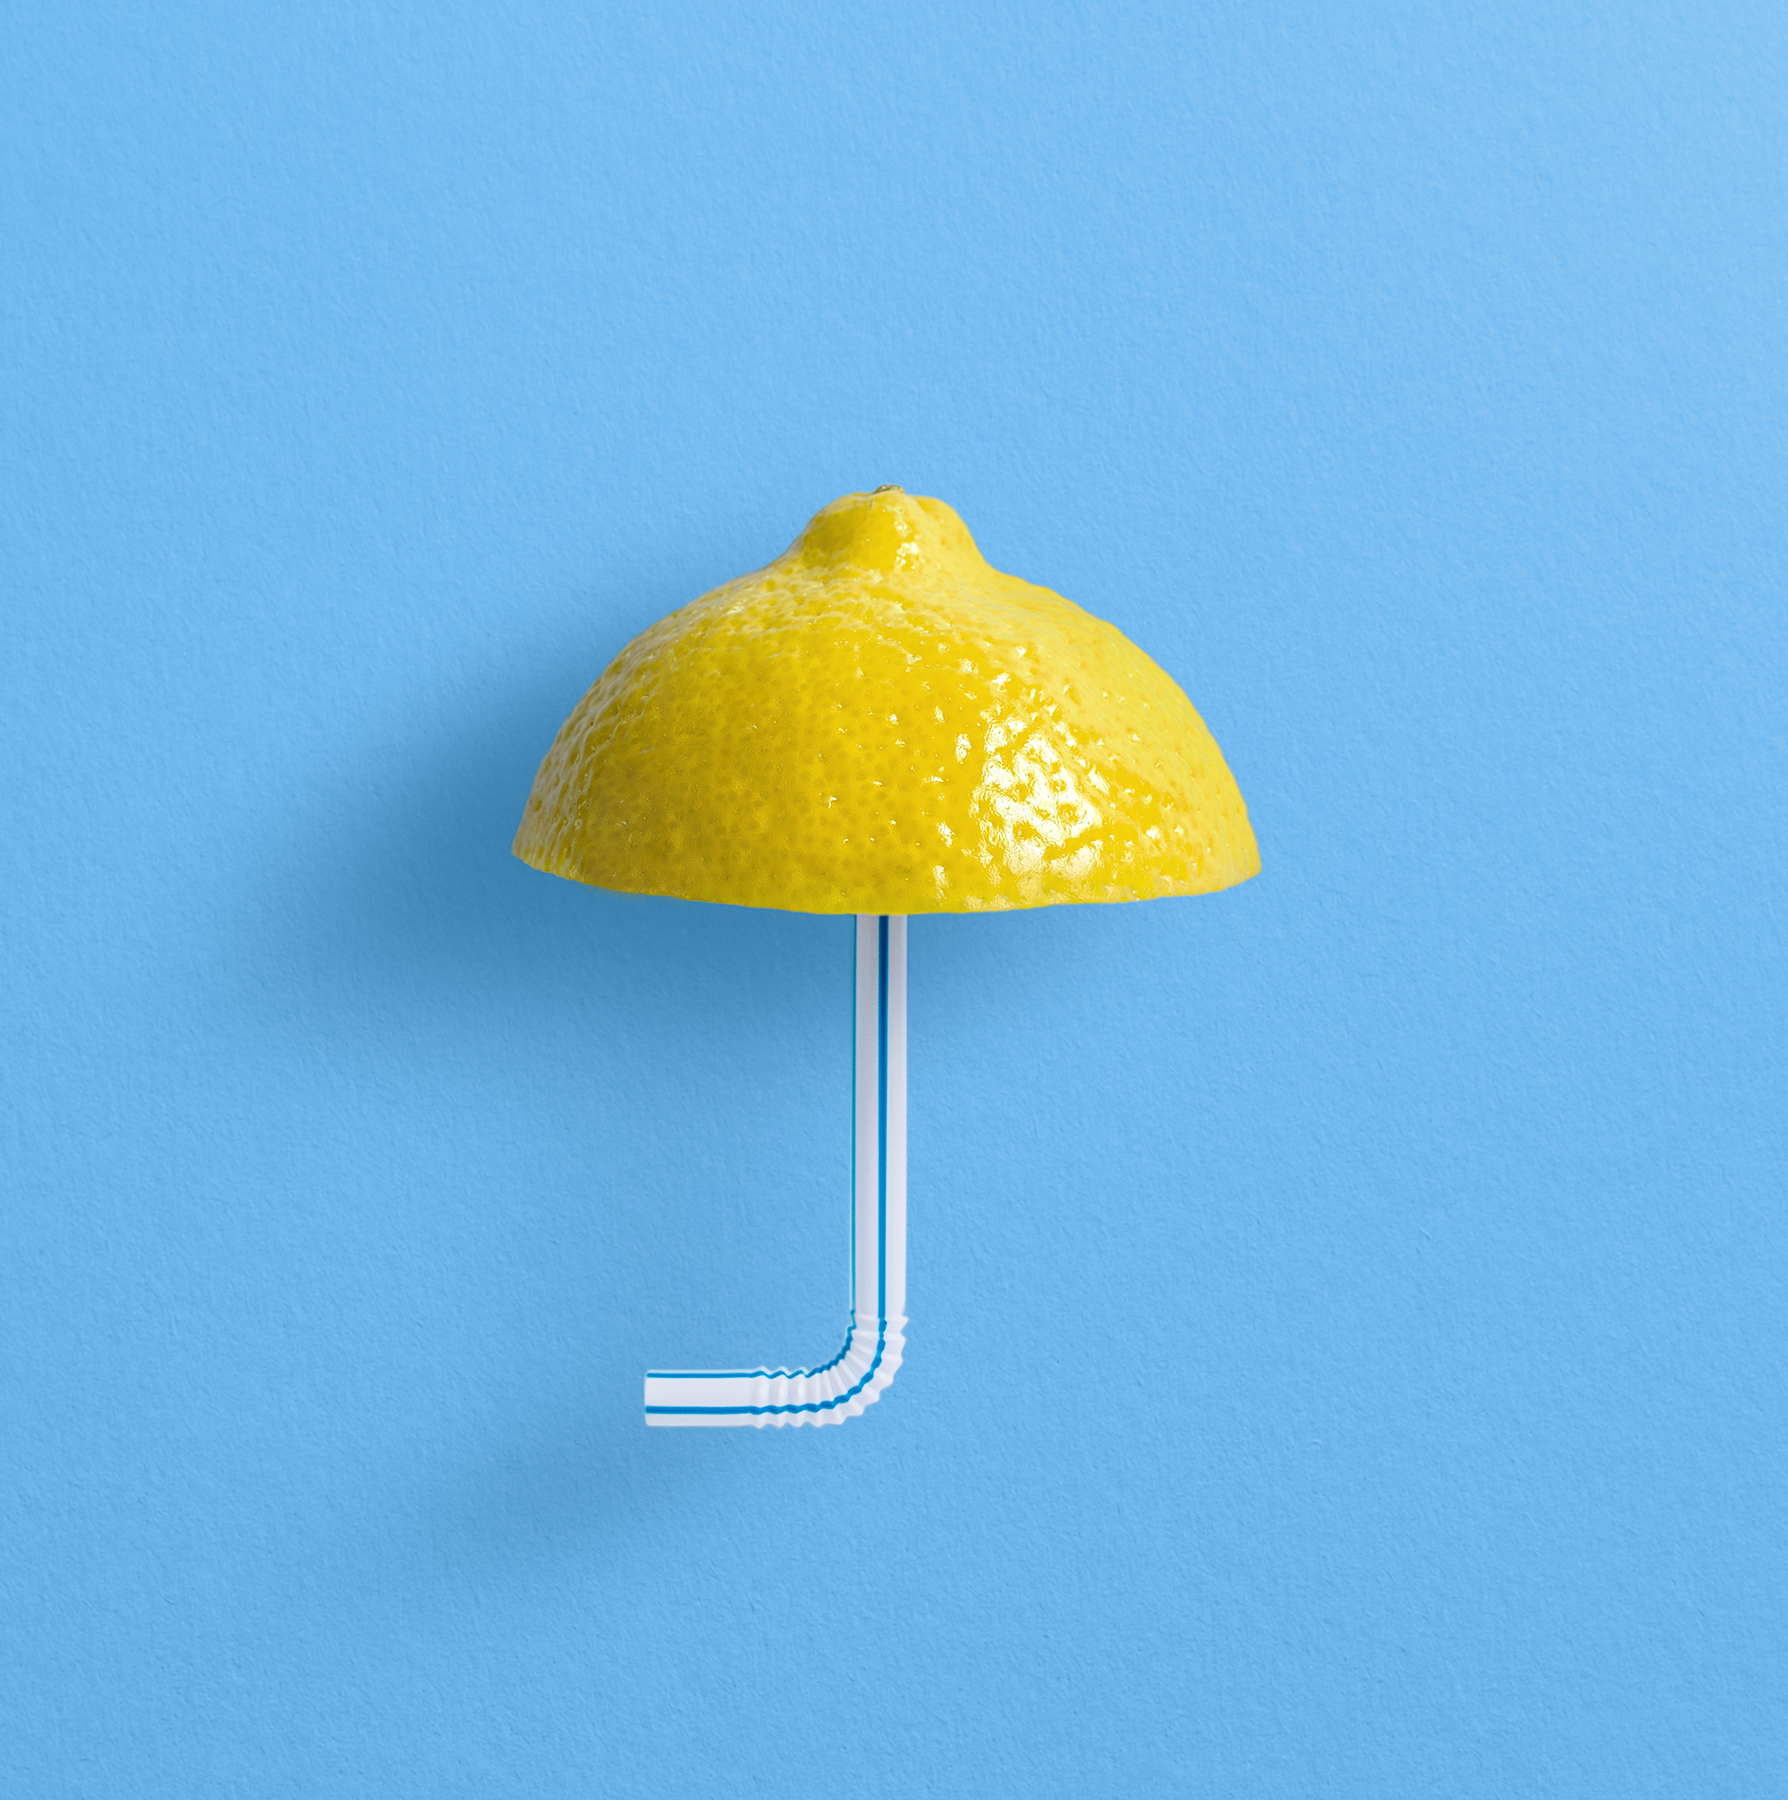 Lemon straw umbrella